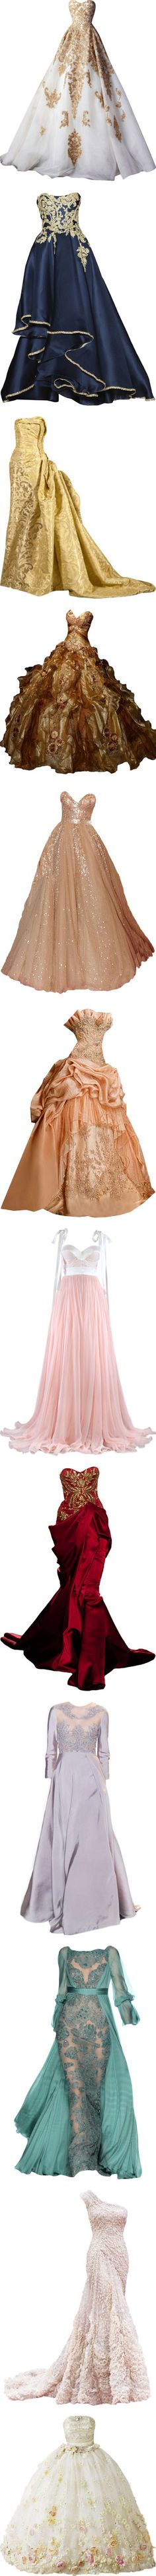 dresses that fuel my desire to be a princess by missherjh on Polyvore featuring…